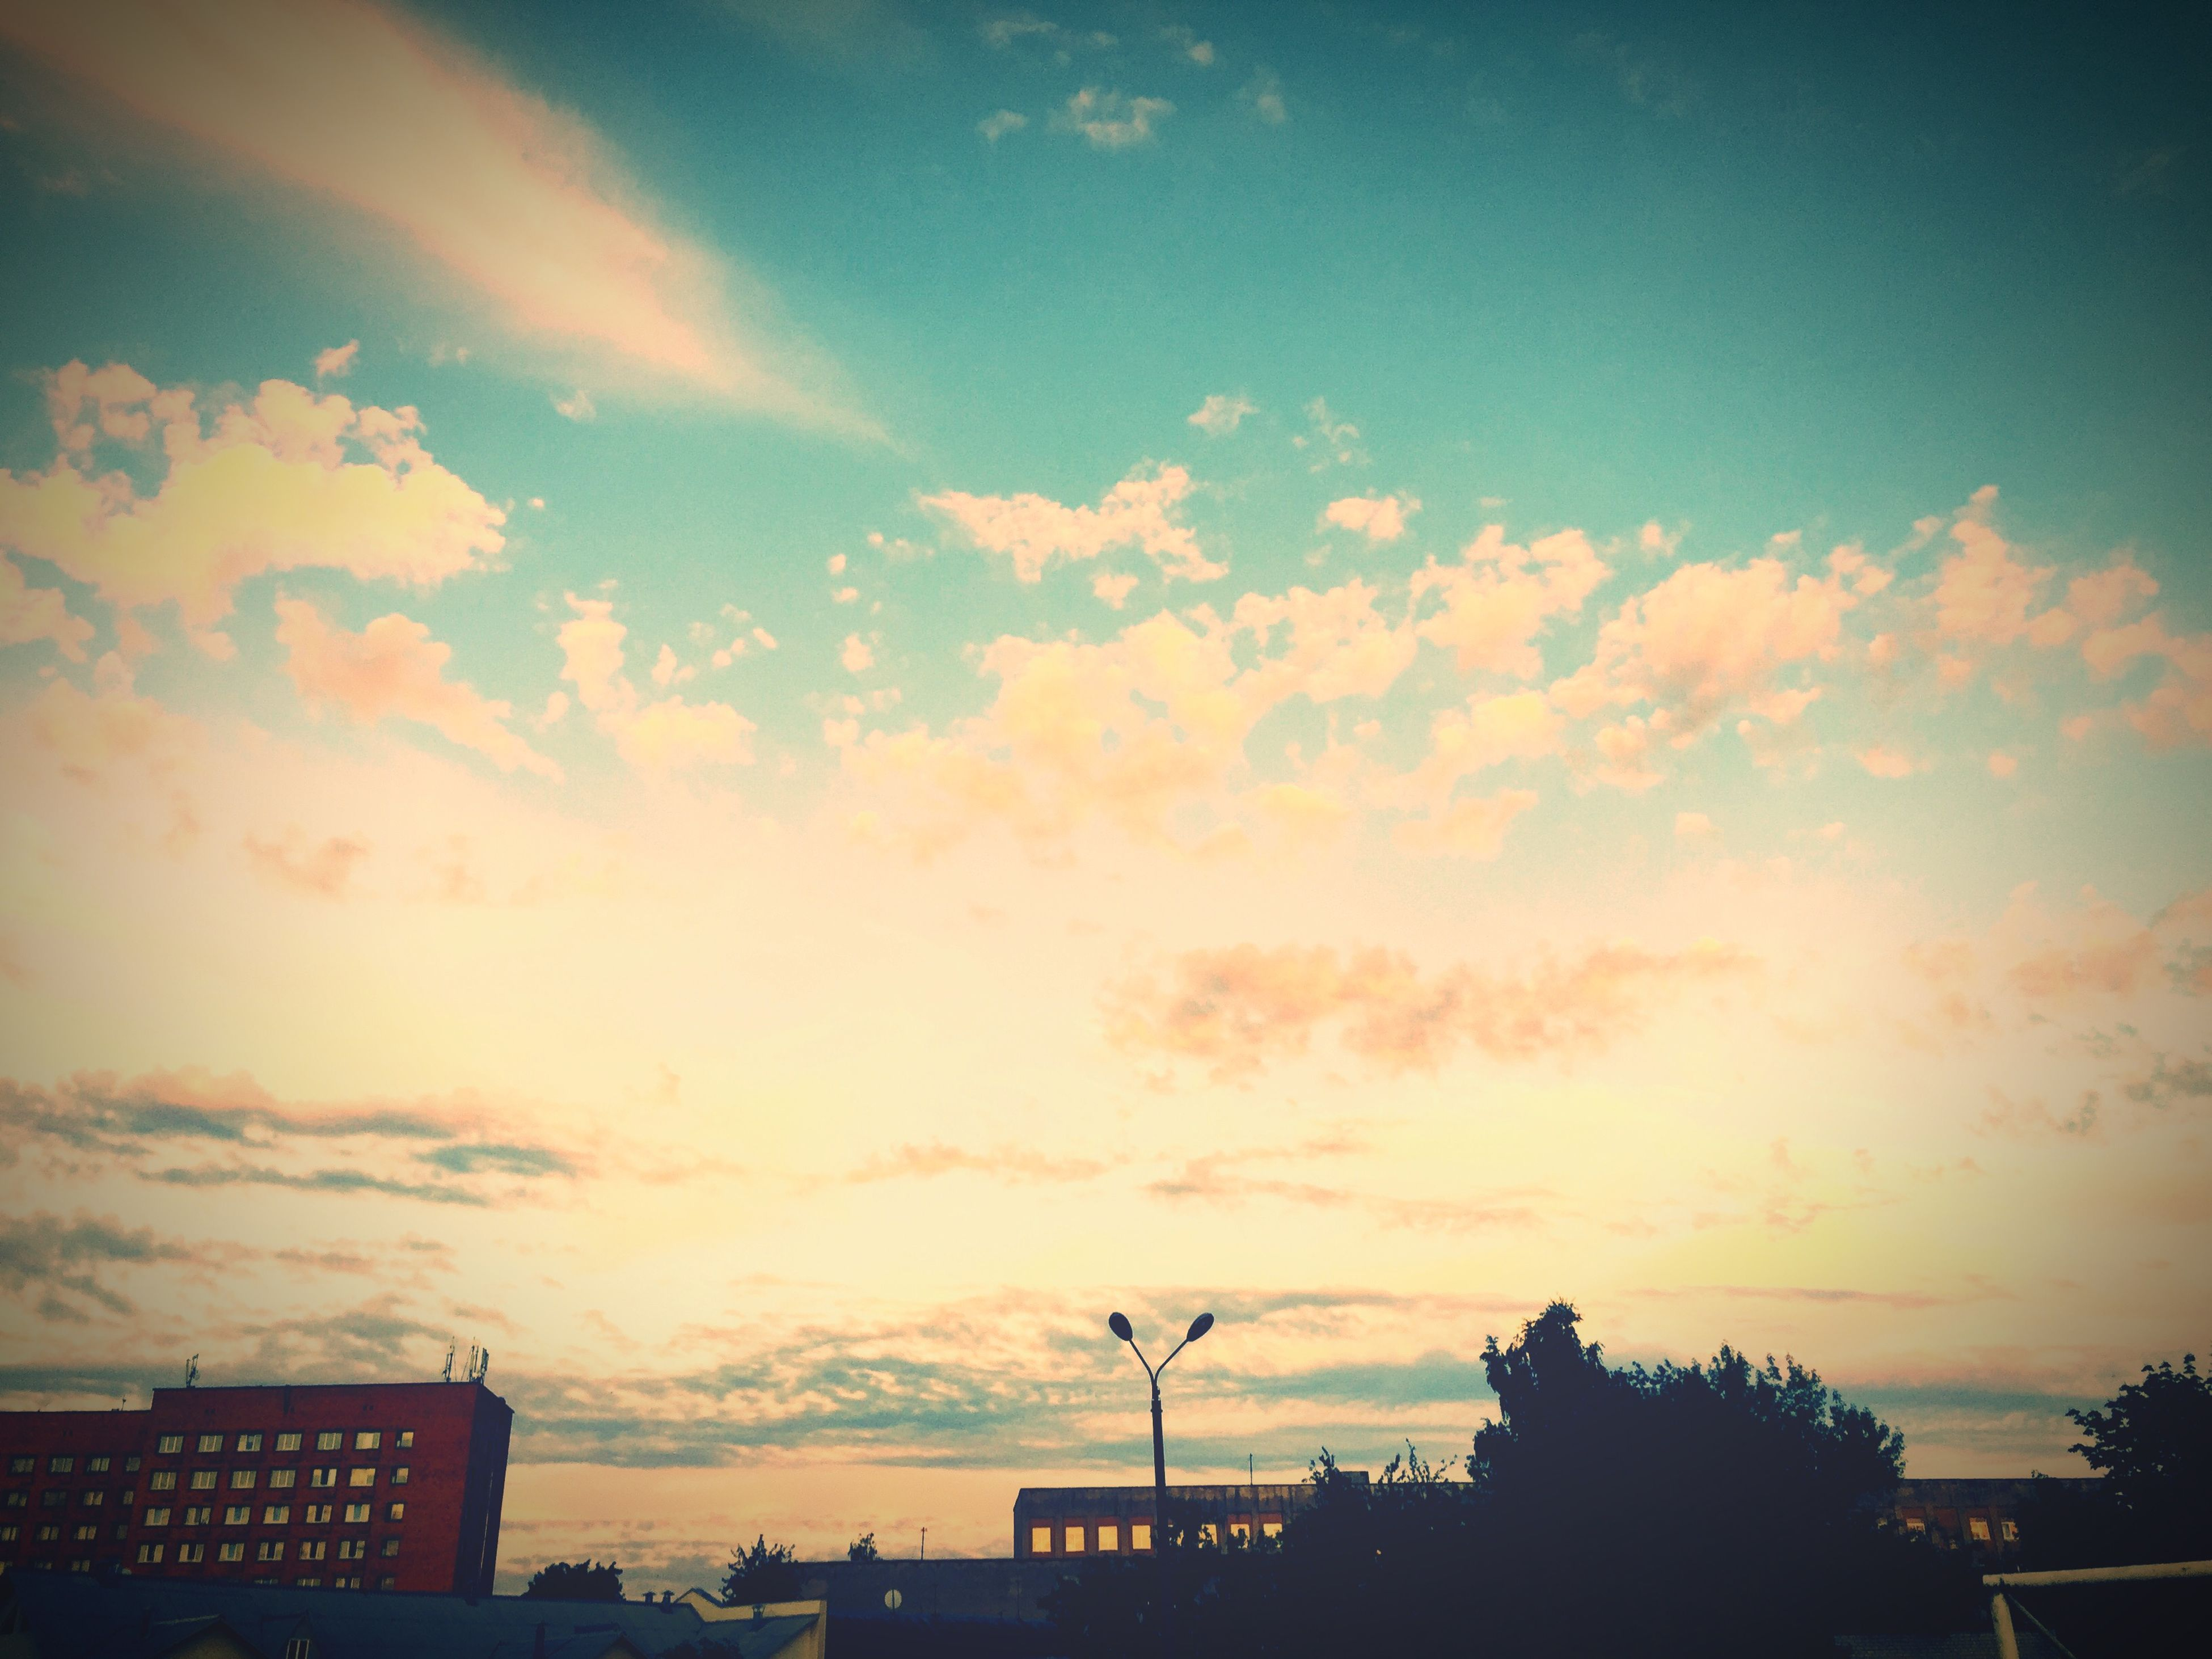 sunset, sky, architecture, silhouette, built structure, building exterior, cloud - sky, low angle view, cloud, beauty in nature, nature, cloudy, scenics, dusk, building, city, outdoors, house, orange color, no people